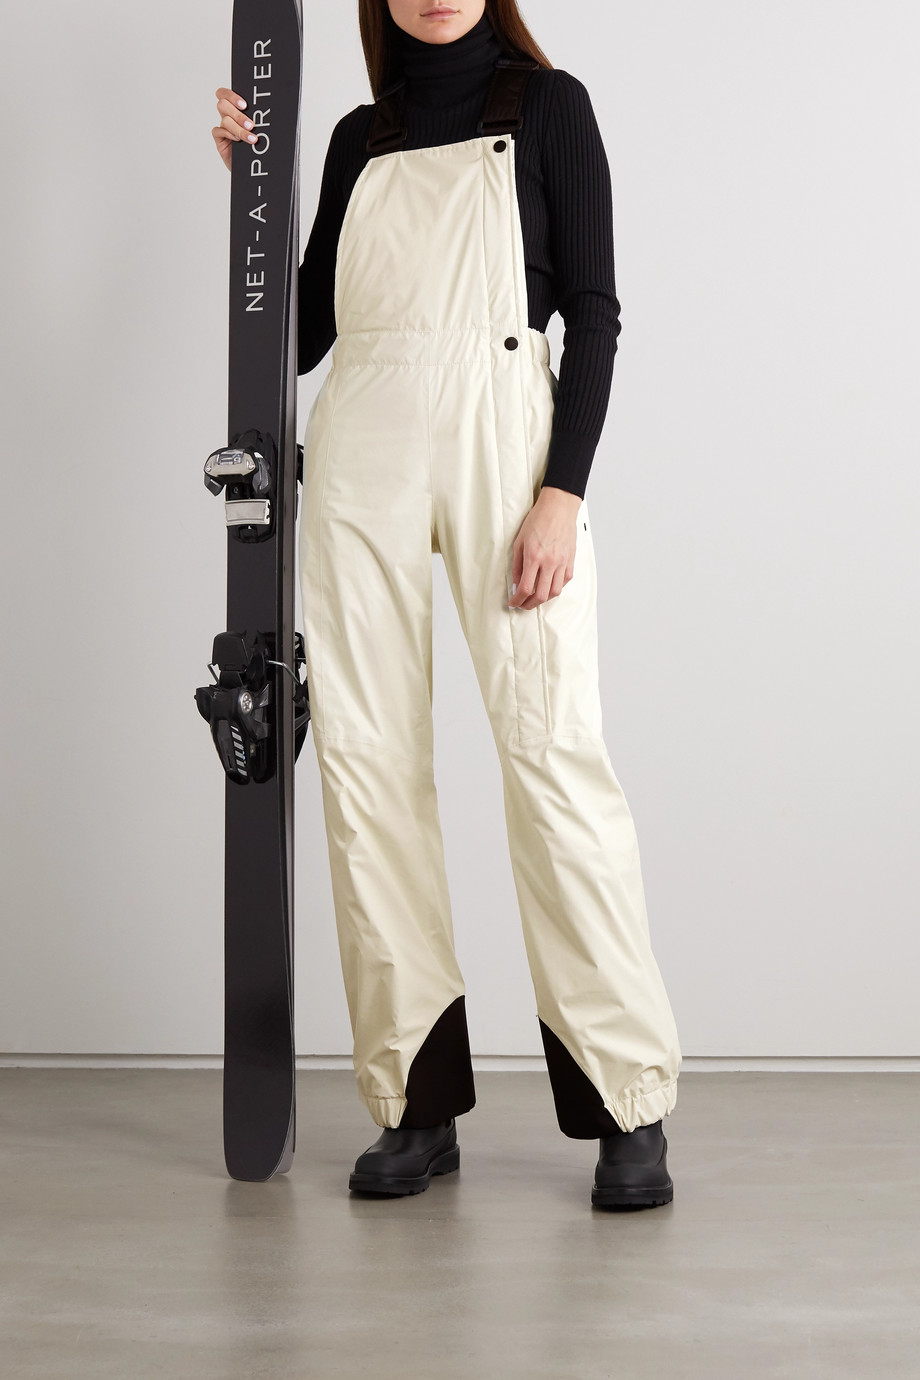 Moncler Genius Two-tone ski salopettes